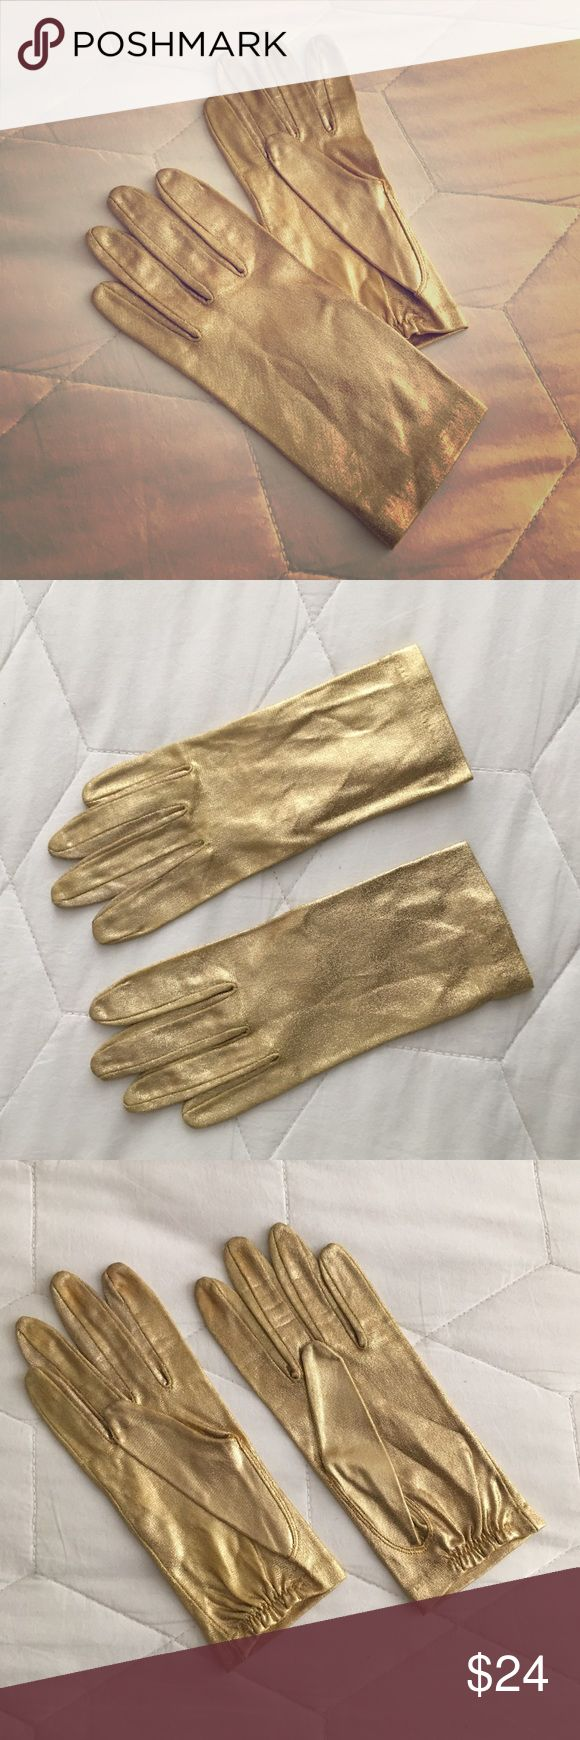 Vintage 1970s Gold Gloves Vintage 1970s gold lame stretch wristlet gloves with elastic at interior wrist. Accessories Gloves & Mittens